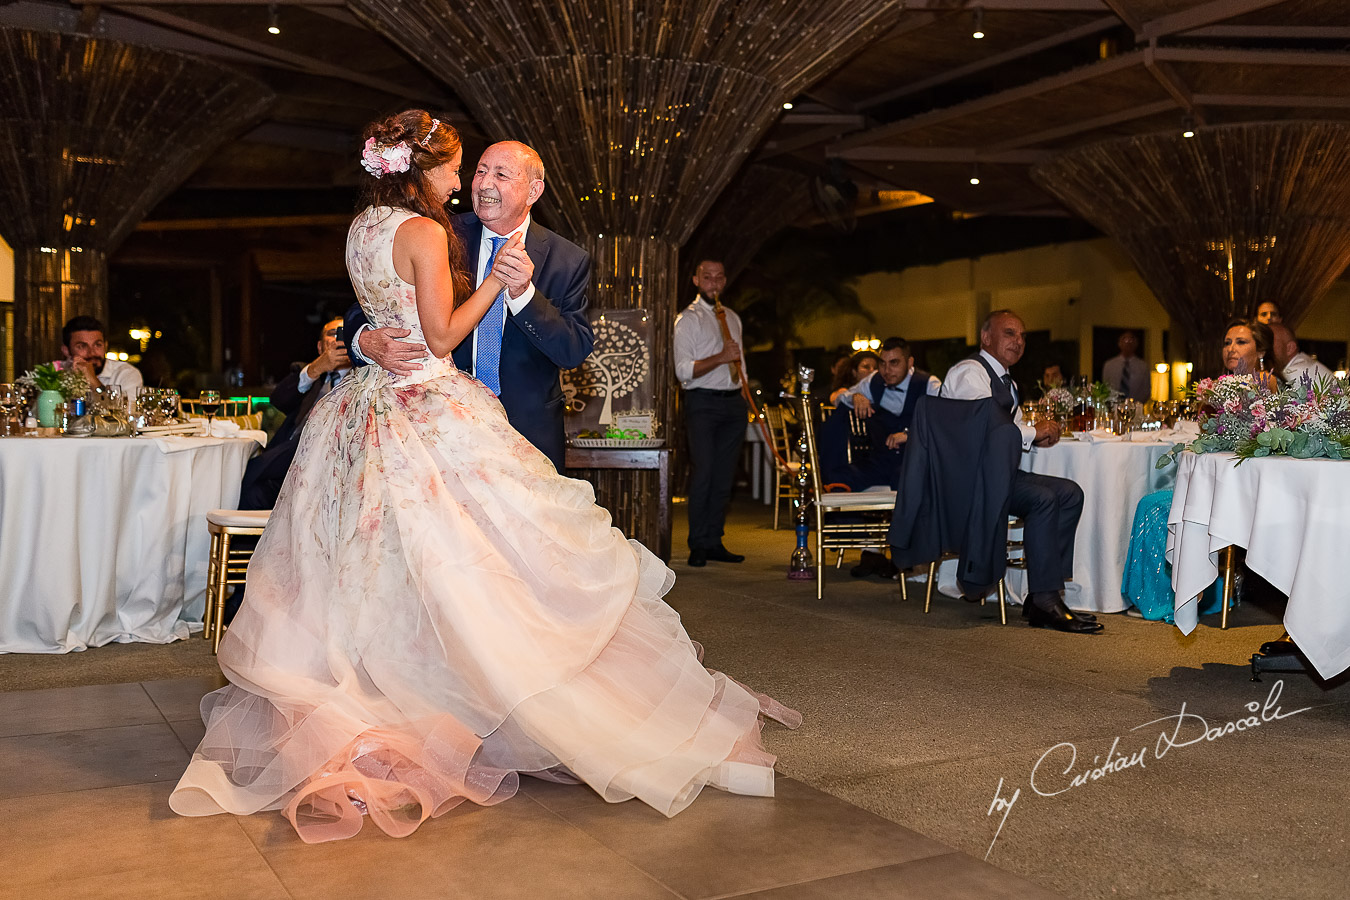 Bride dancing with her father, an emotional moment photographed as part of an Exclusive Wedding photography at Grand Resort Limassol, captured by Cyprus Wedding Photographer Cristian Dascalu.